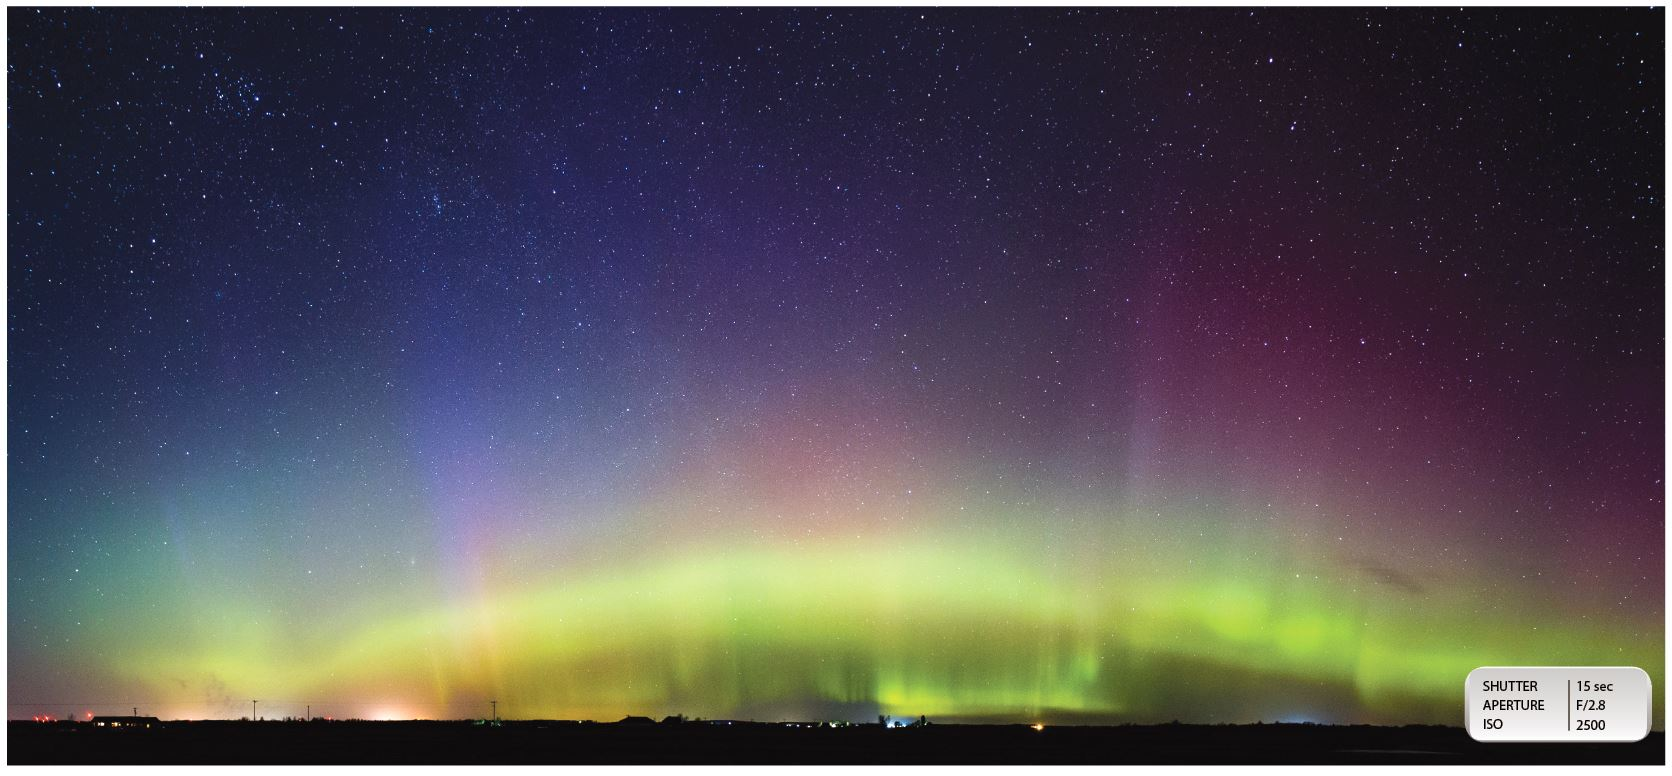 BRILLIANT DISPLAY: The image above is a composite of two photographs I took so I could fit the entire auroral oval into the shot. This image was taken just north of Marion in Osceola County, Mich. around 10:30 a.m. when the lights were at their peak brightness.